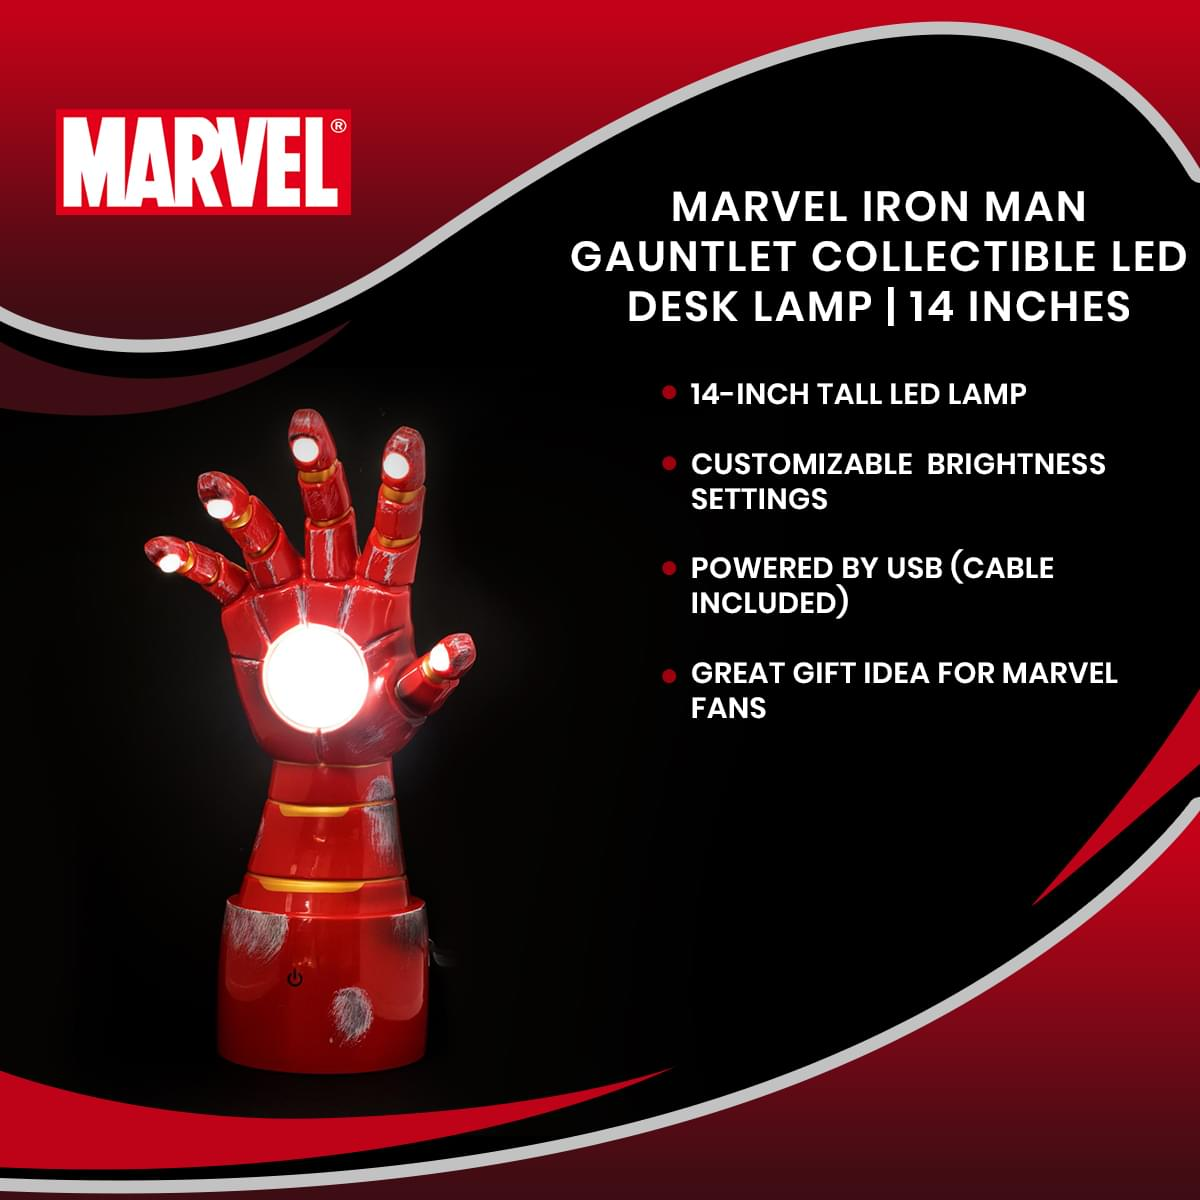 Marvel Iron Man Gauntlet Collectible LED Desk Lamp | 14 Inches